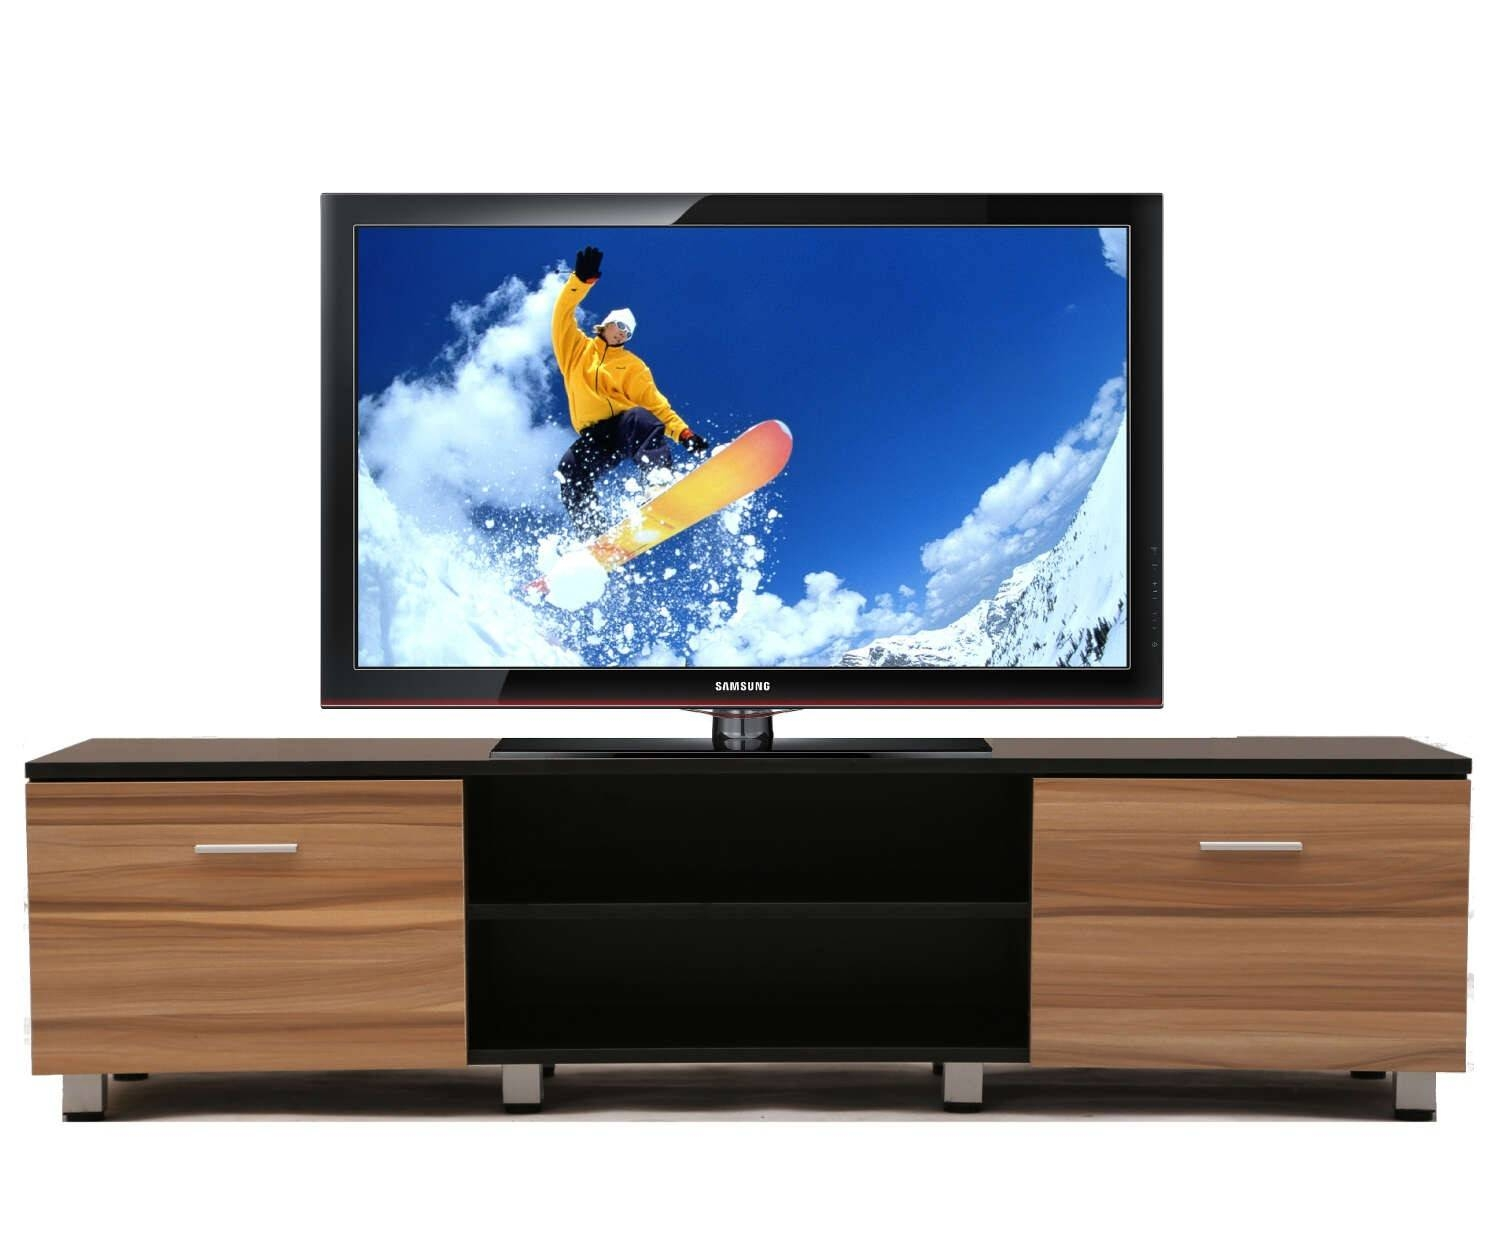 Wooden Samba Tv Unit Stand Cabinet | Furniturebox Throughout Wooden Tv Stands (View 8 of 15)